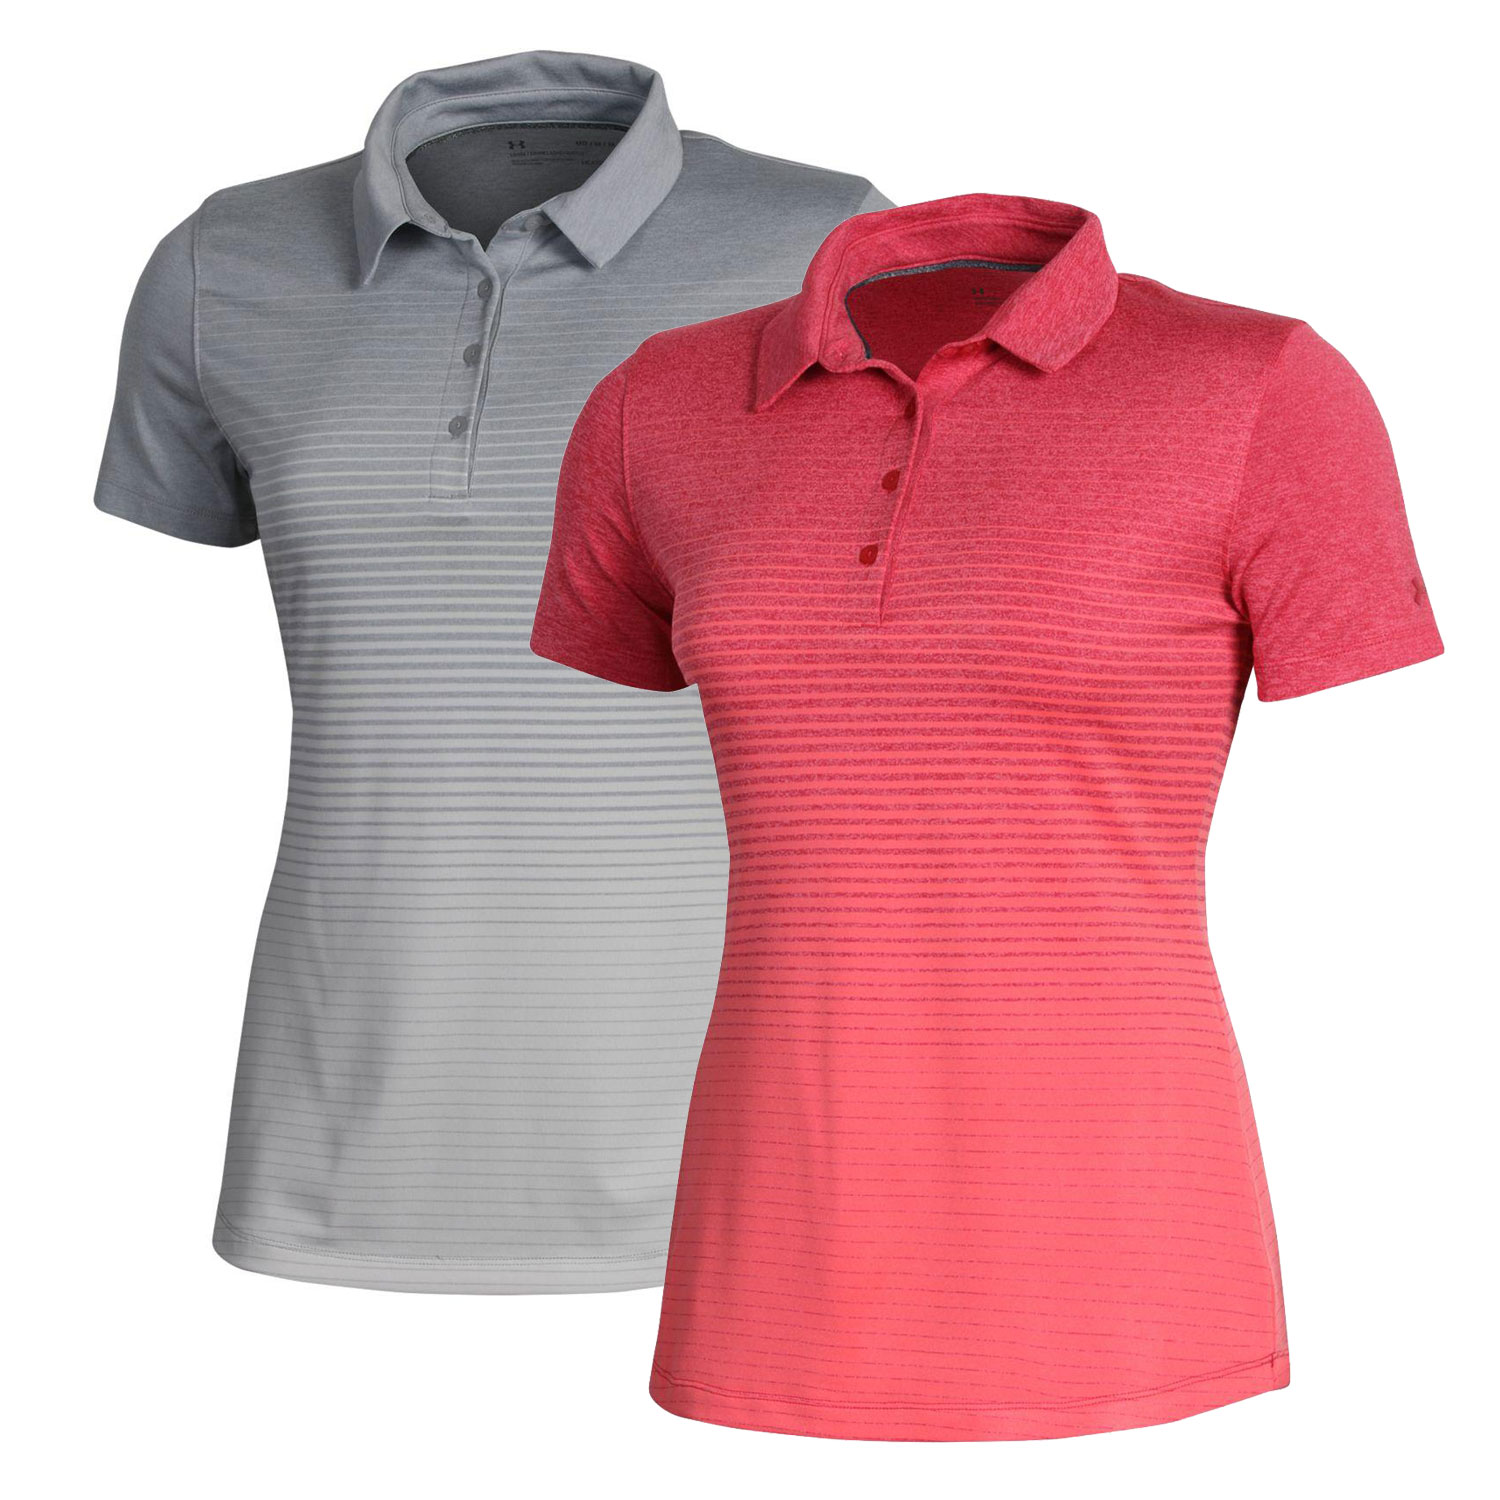 Under Armour Women's Zinger Skyfall Polo